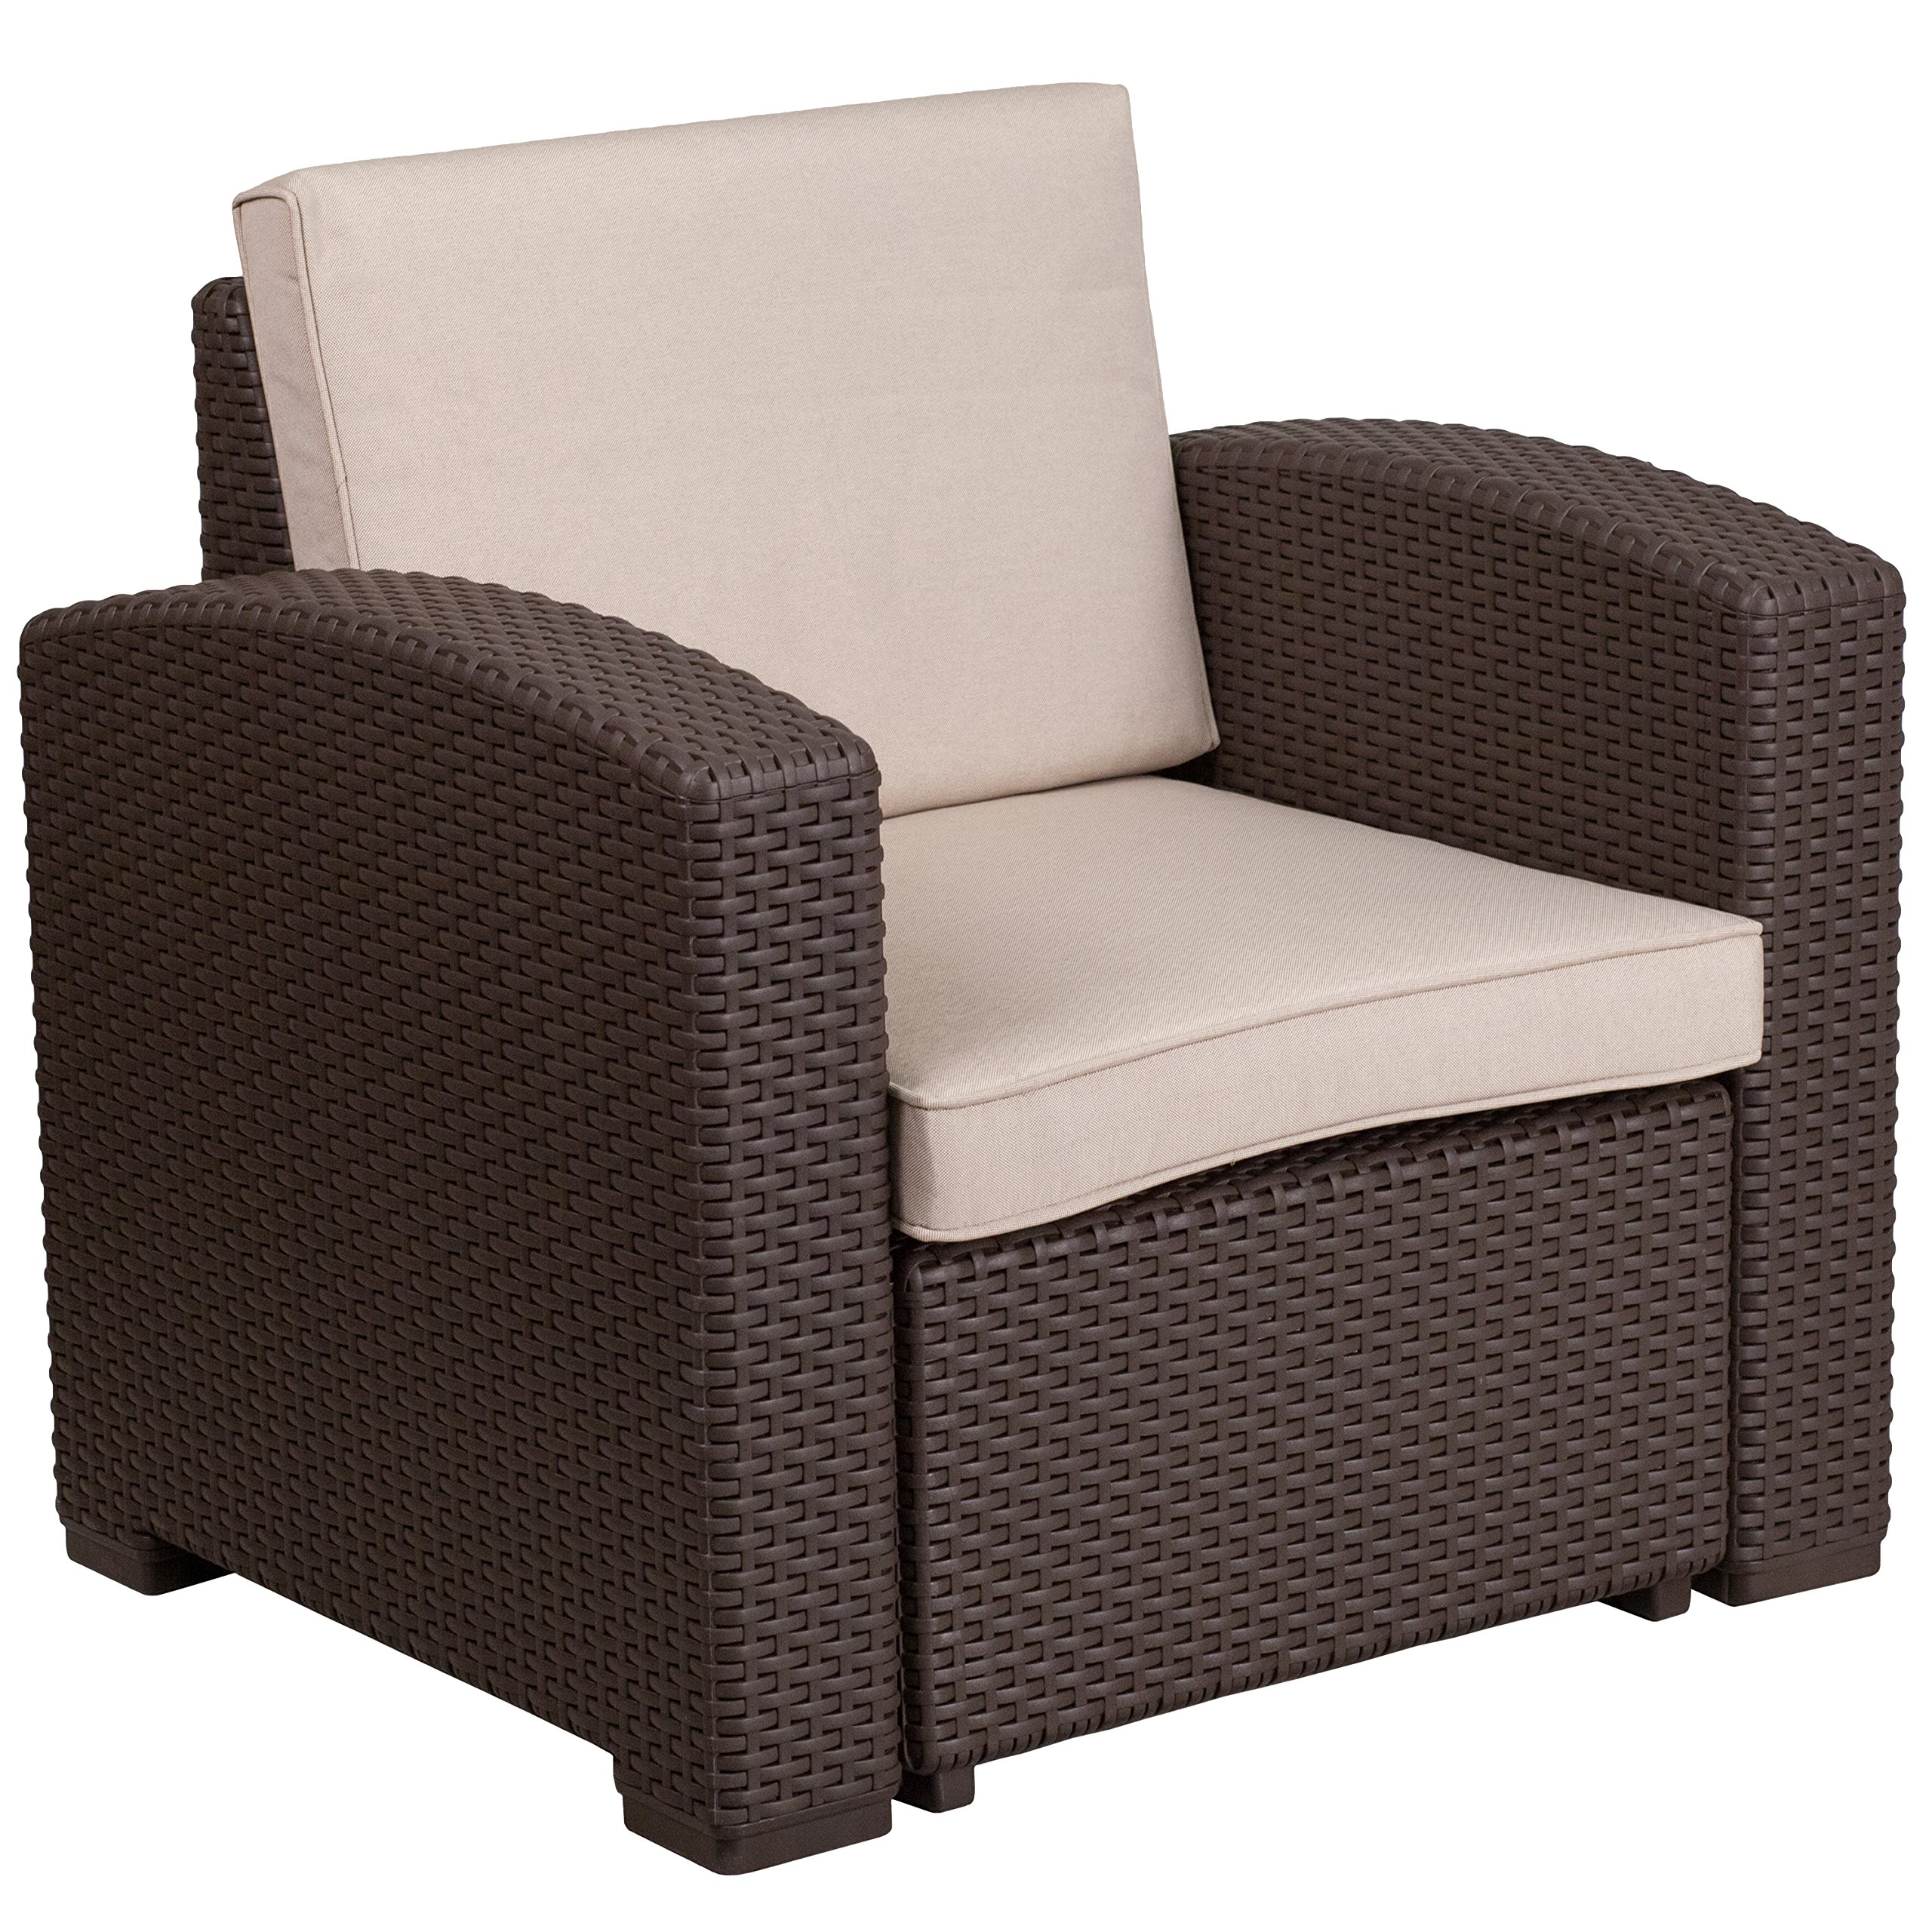 Flash Furniture Chocolate Brown Faux Rattan Chair with All-Weather Beige Cushion by Flash Furniture